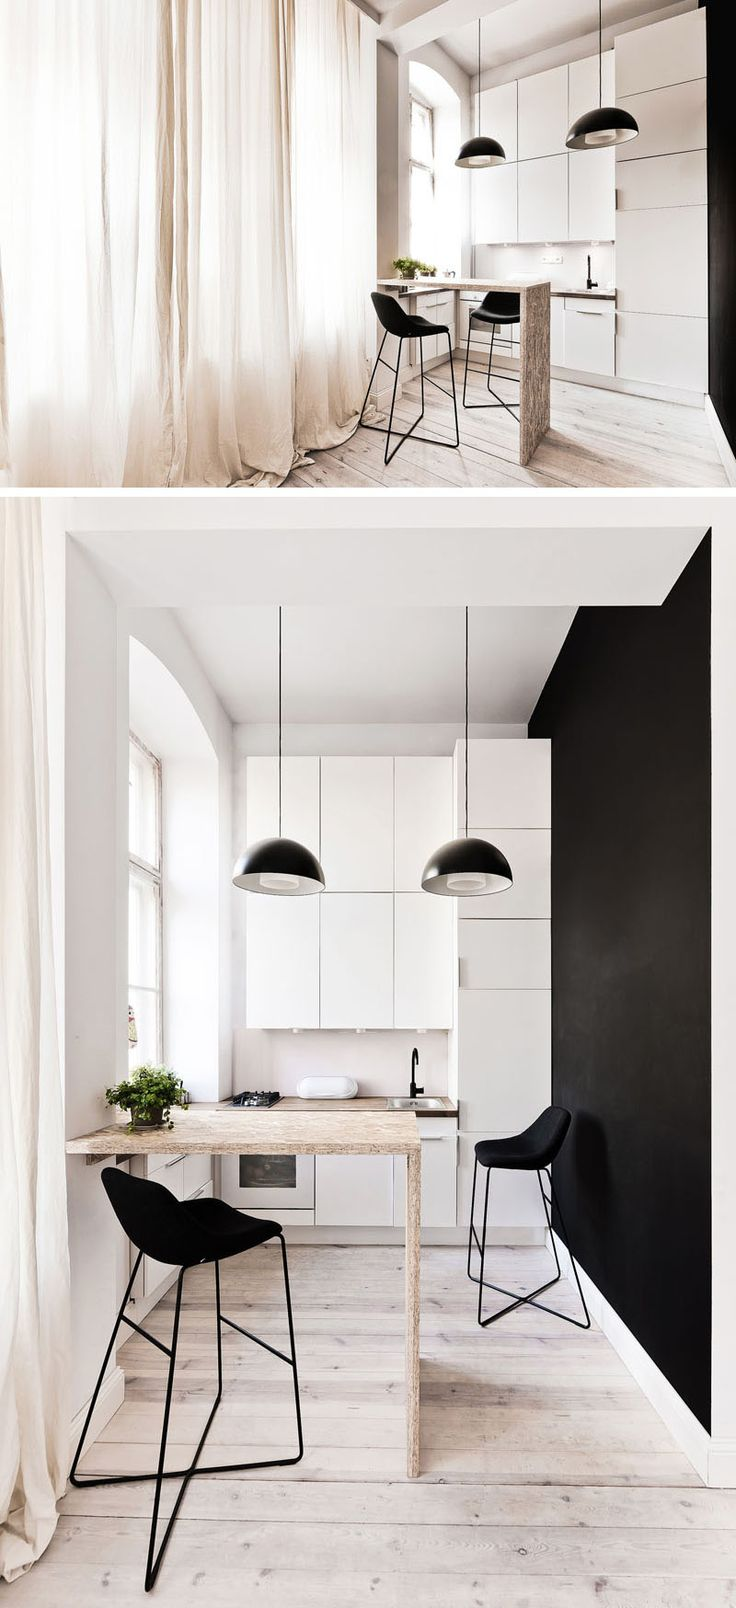 This tiny kitchen is small but functional. As the space it quite tall, there's an additional row of upper cabinets to increase the storage space. A small breakfast bar provides a place to eat, and acts as a separation between the kitchen and living area.